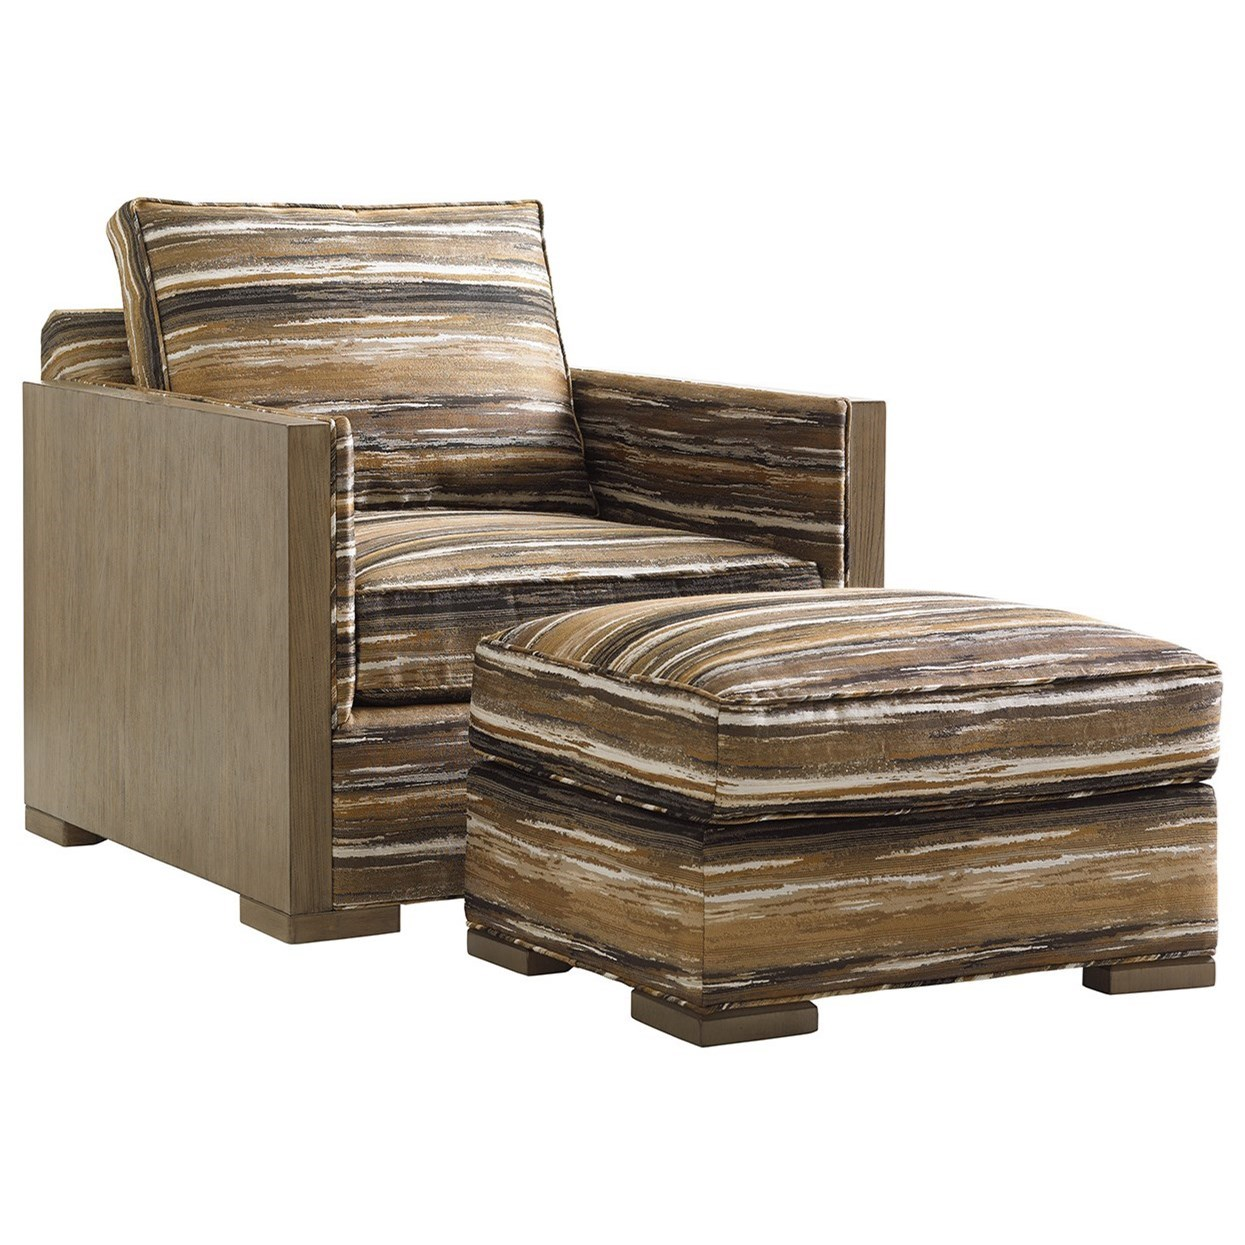 Shadow Play Delshire Chair and Ottoman Set by Lexington at Jacksonville Furniture Mart